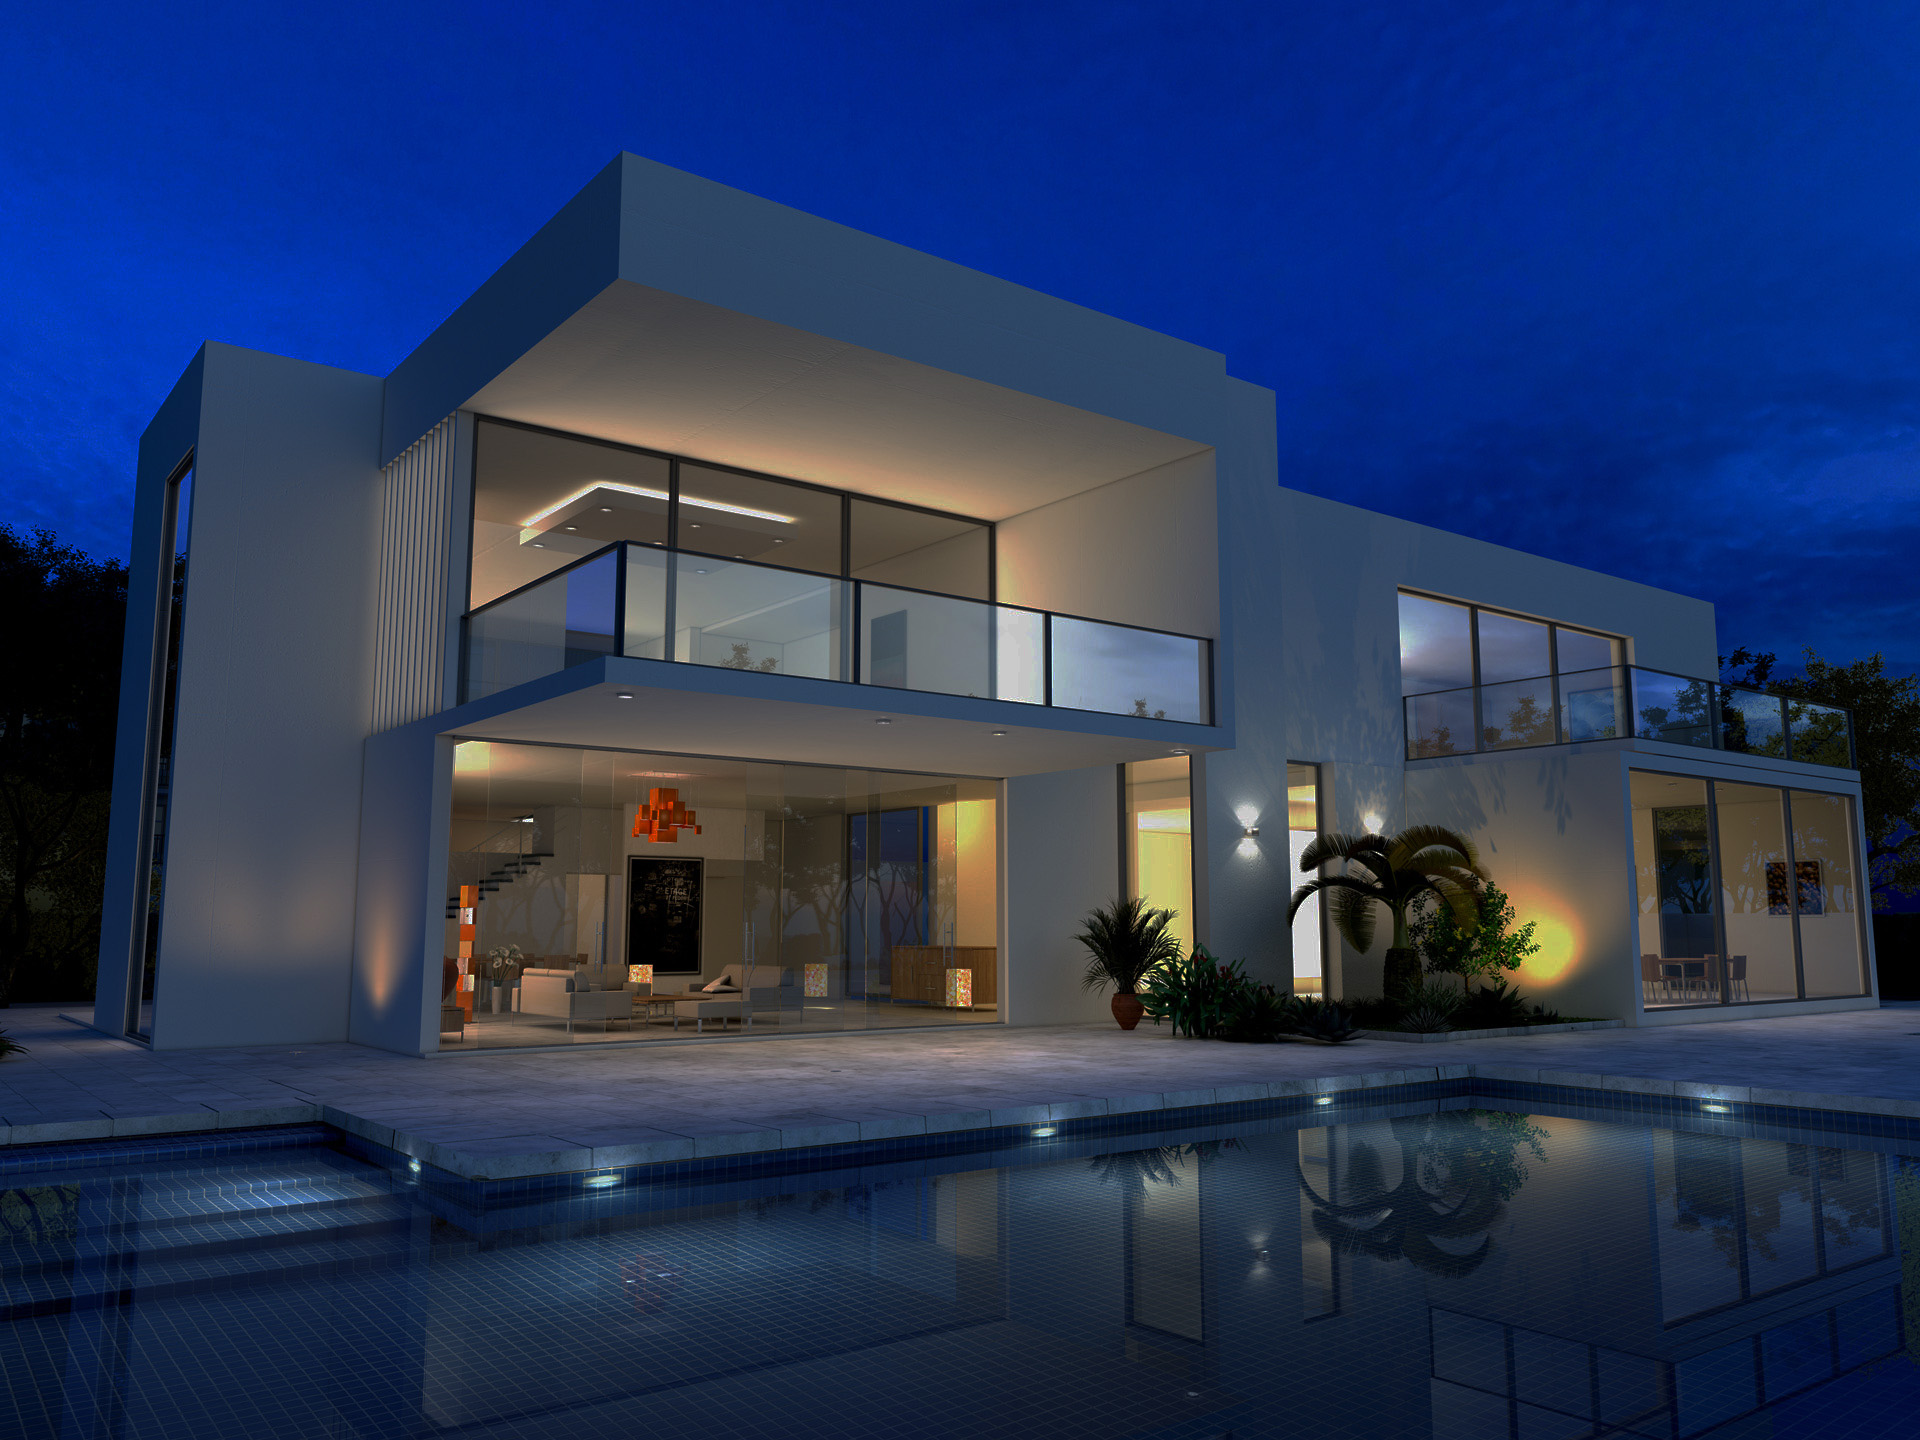 Luxurious-villa-with-pool-506903162_4500x3375-2